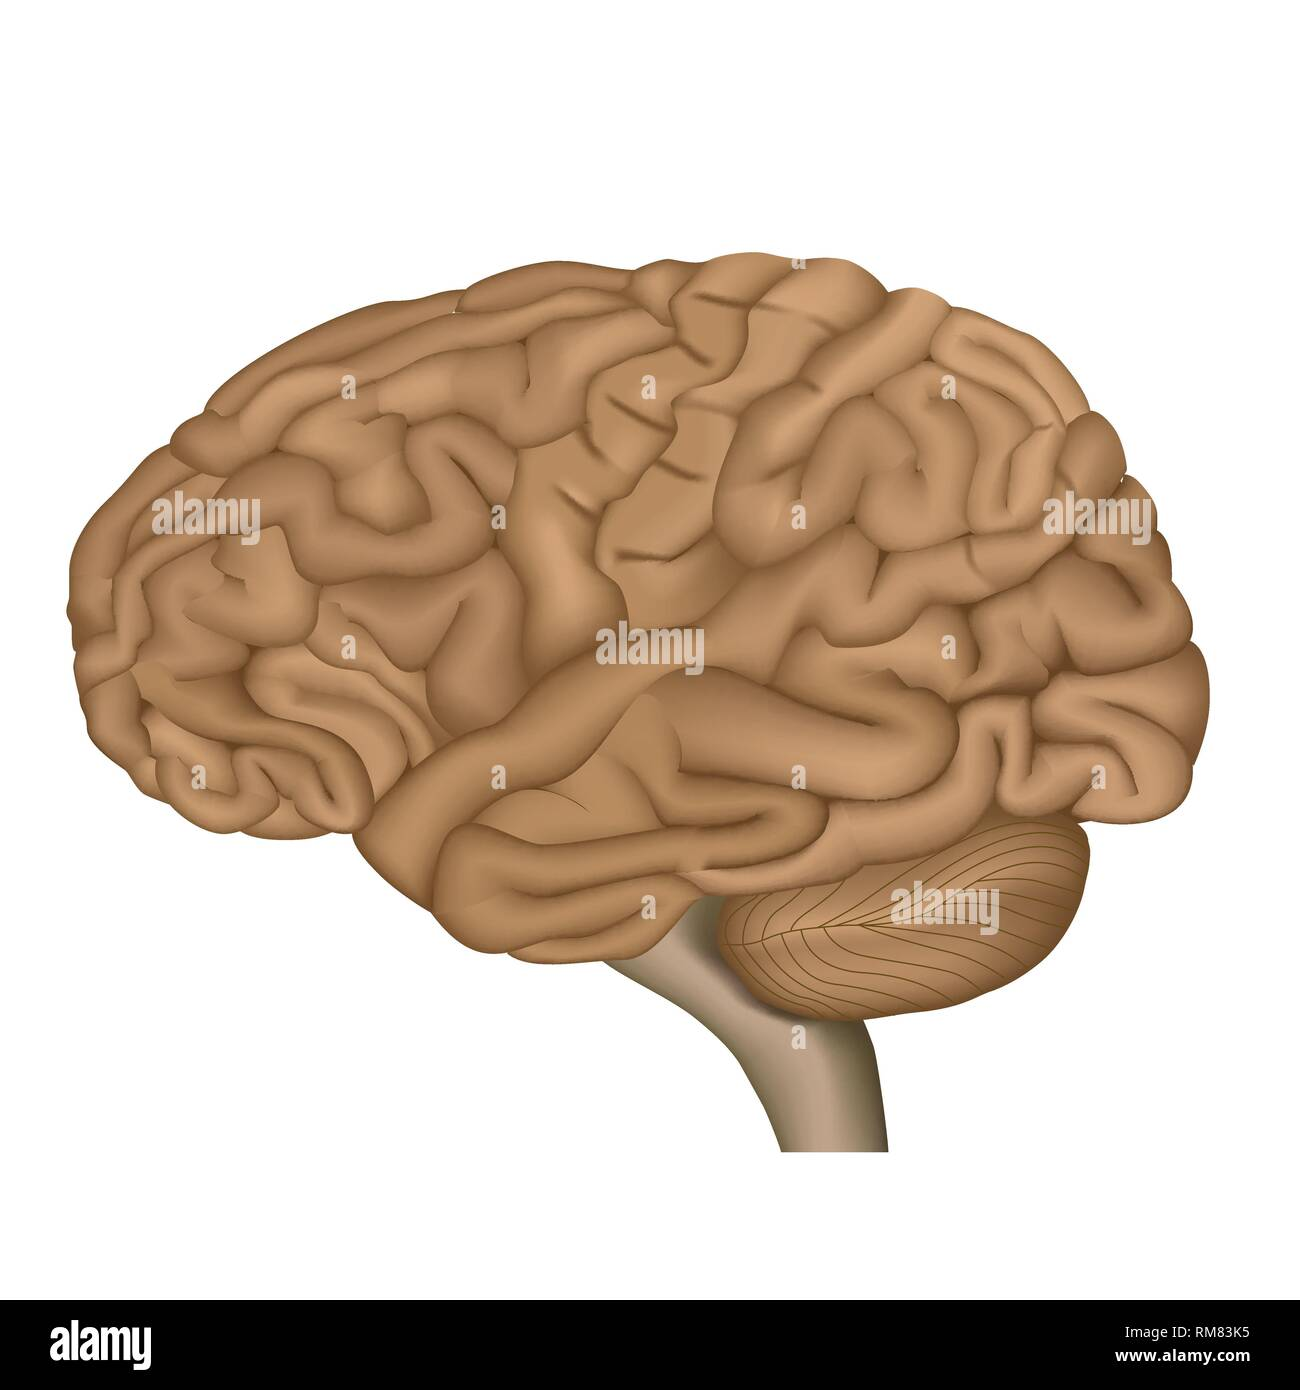 Human Brain Anatomy 3d Illustration On White Background Manual Guide